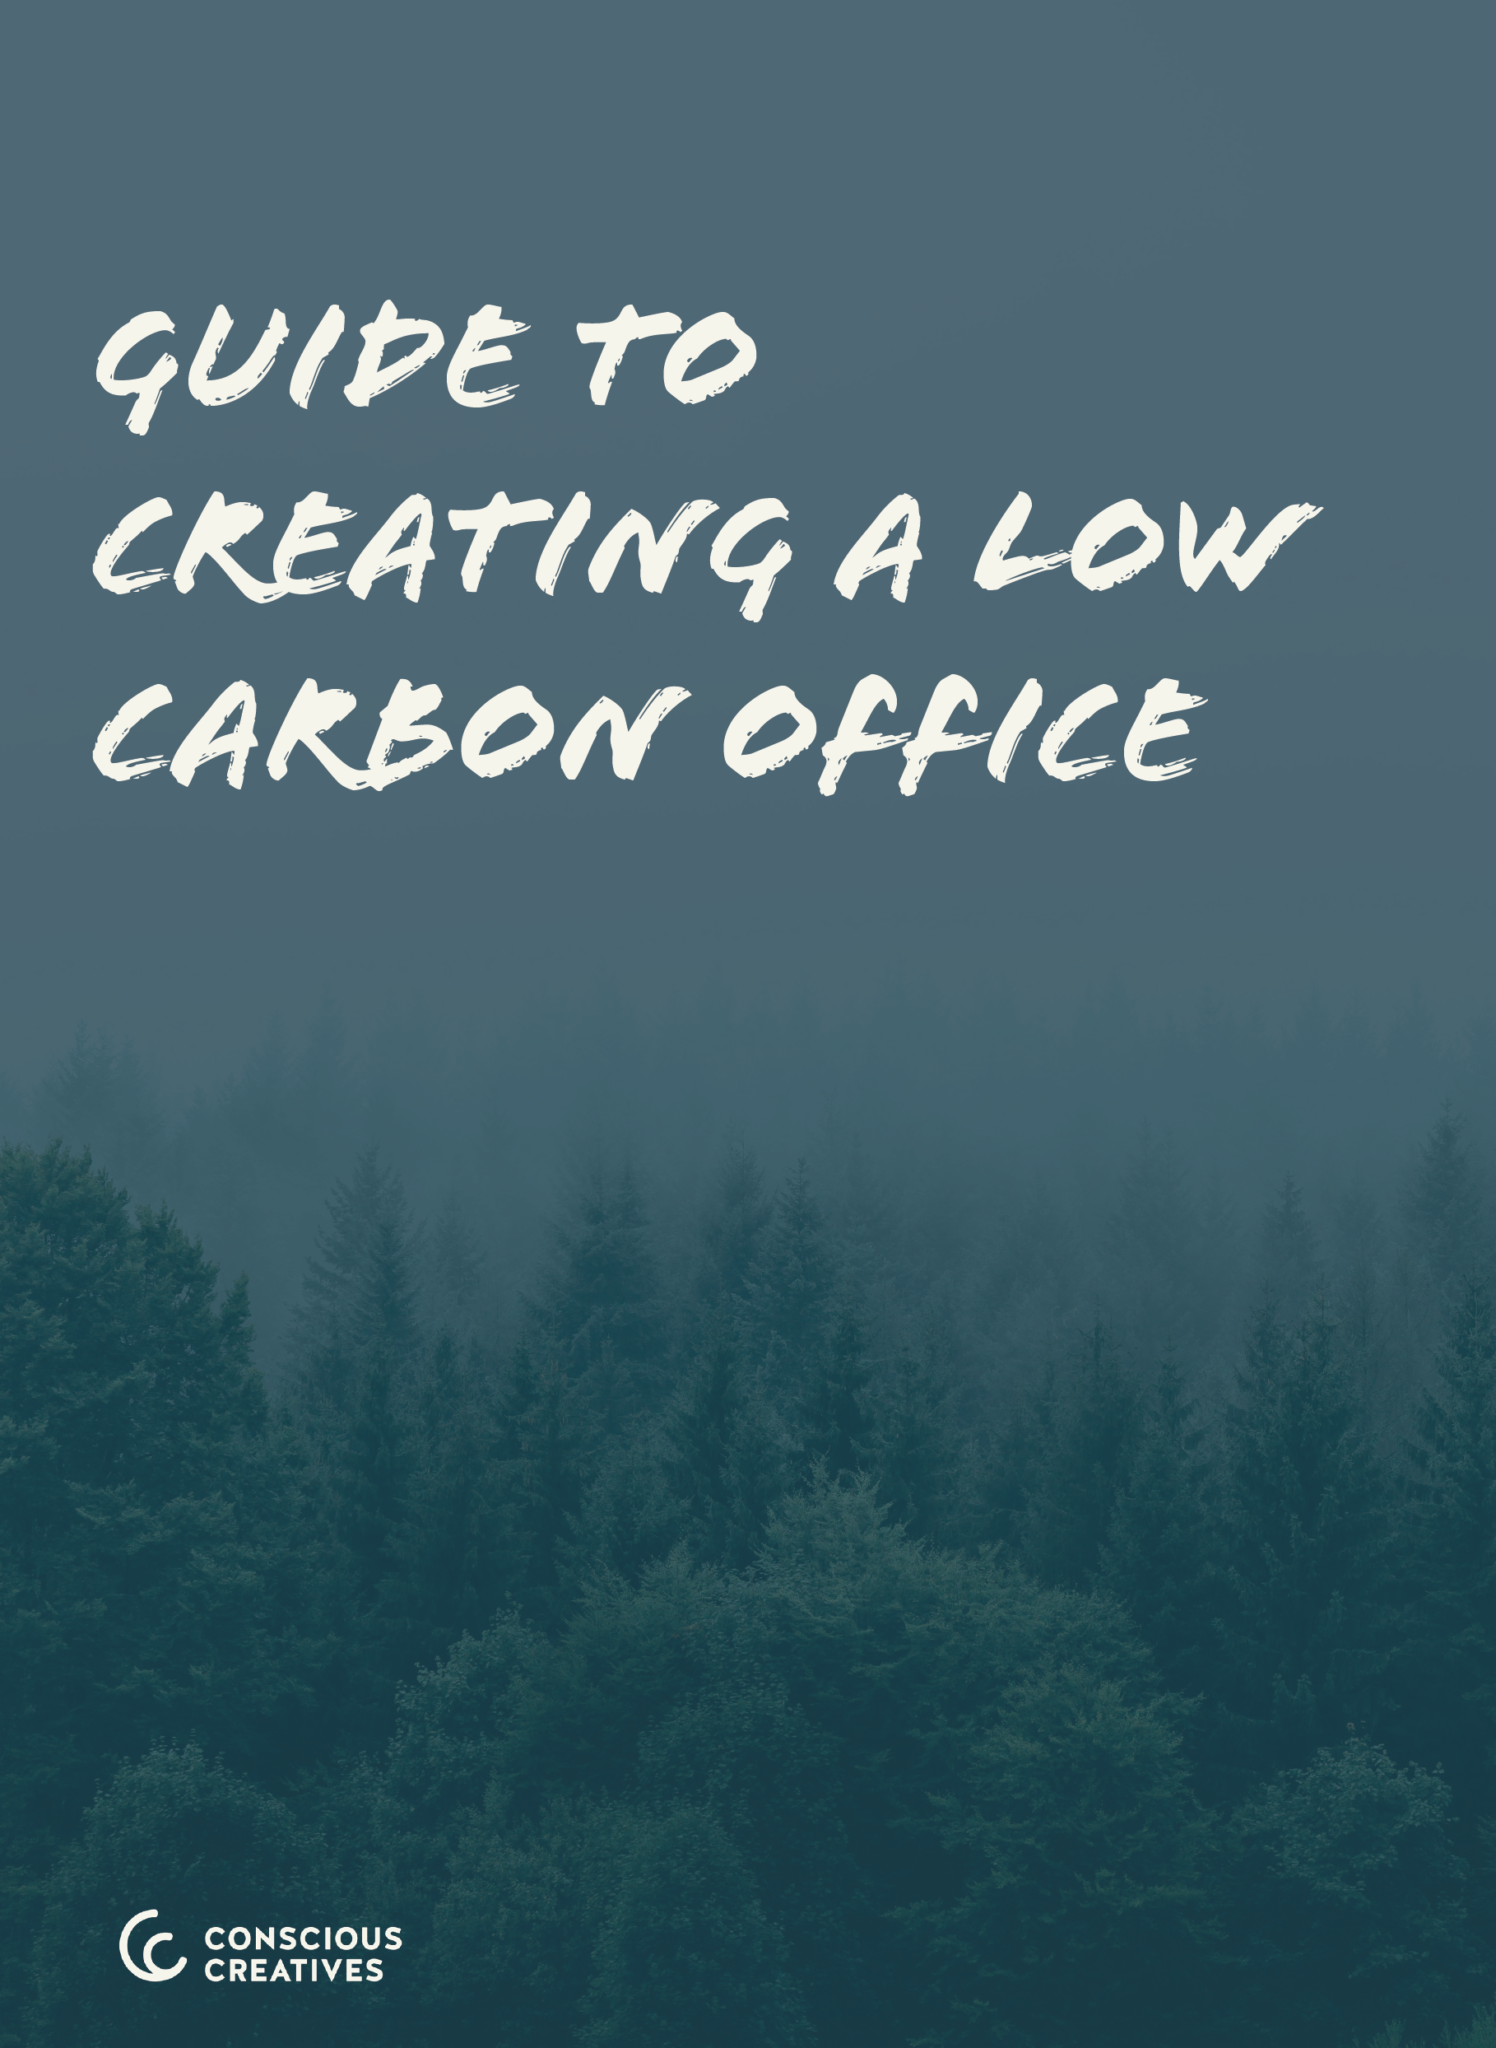 Low Carbon Office Guide Sidebar